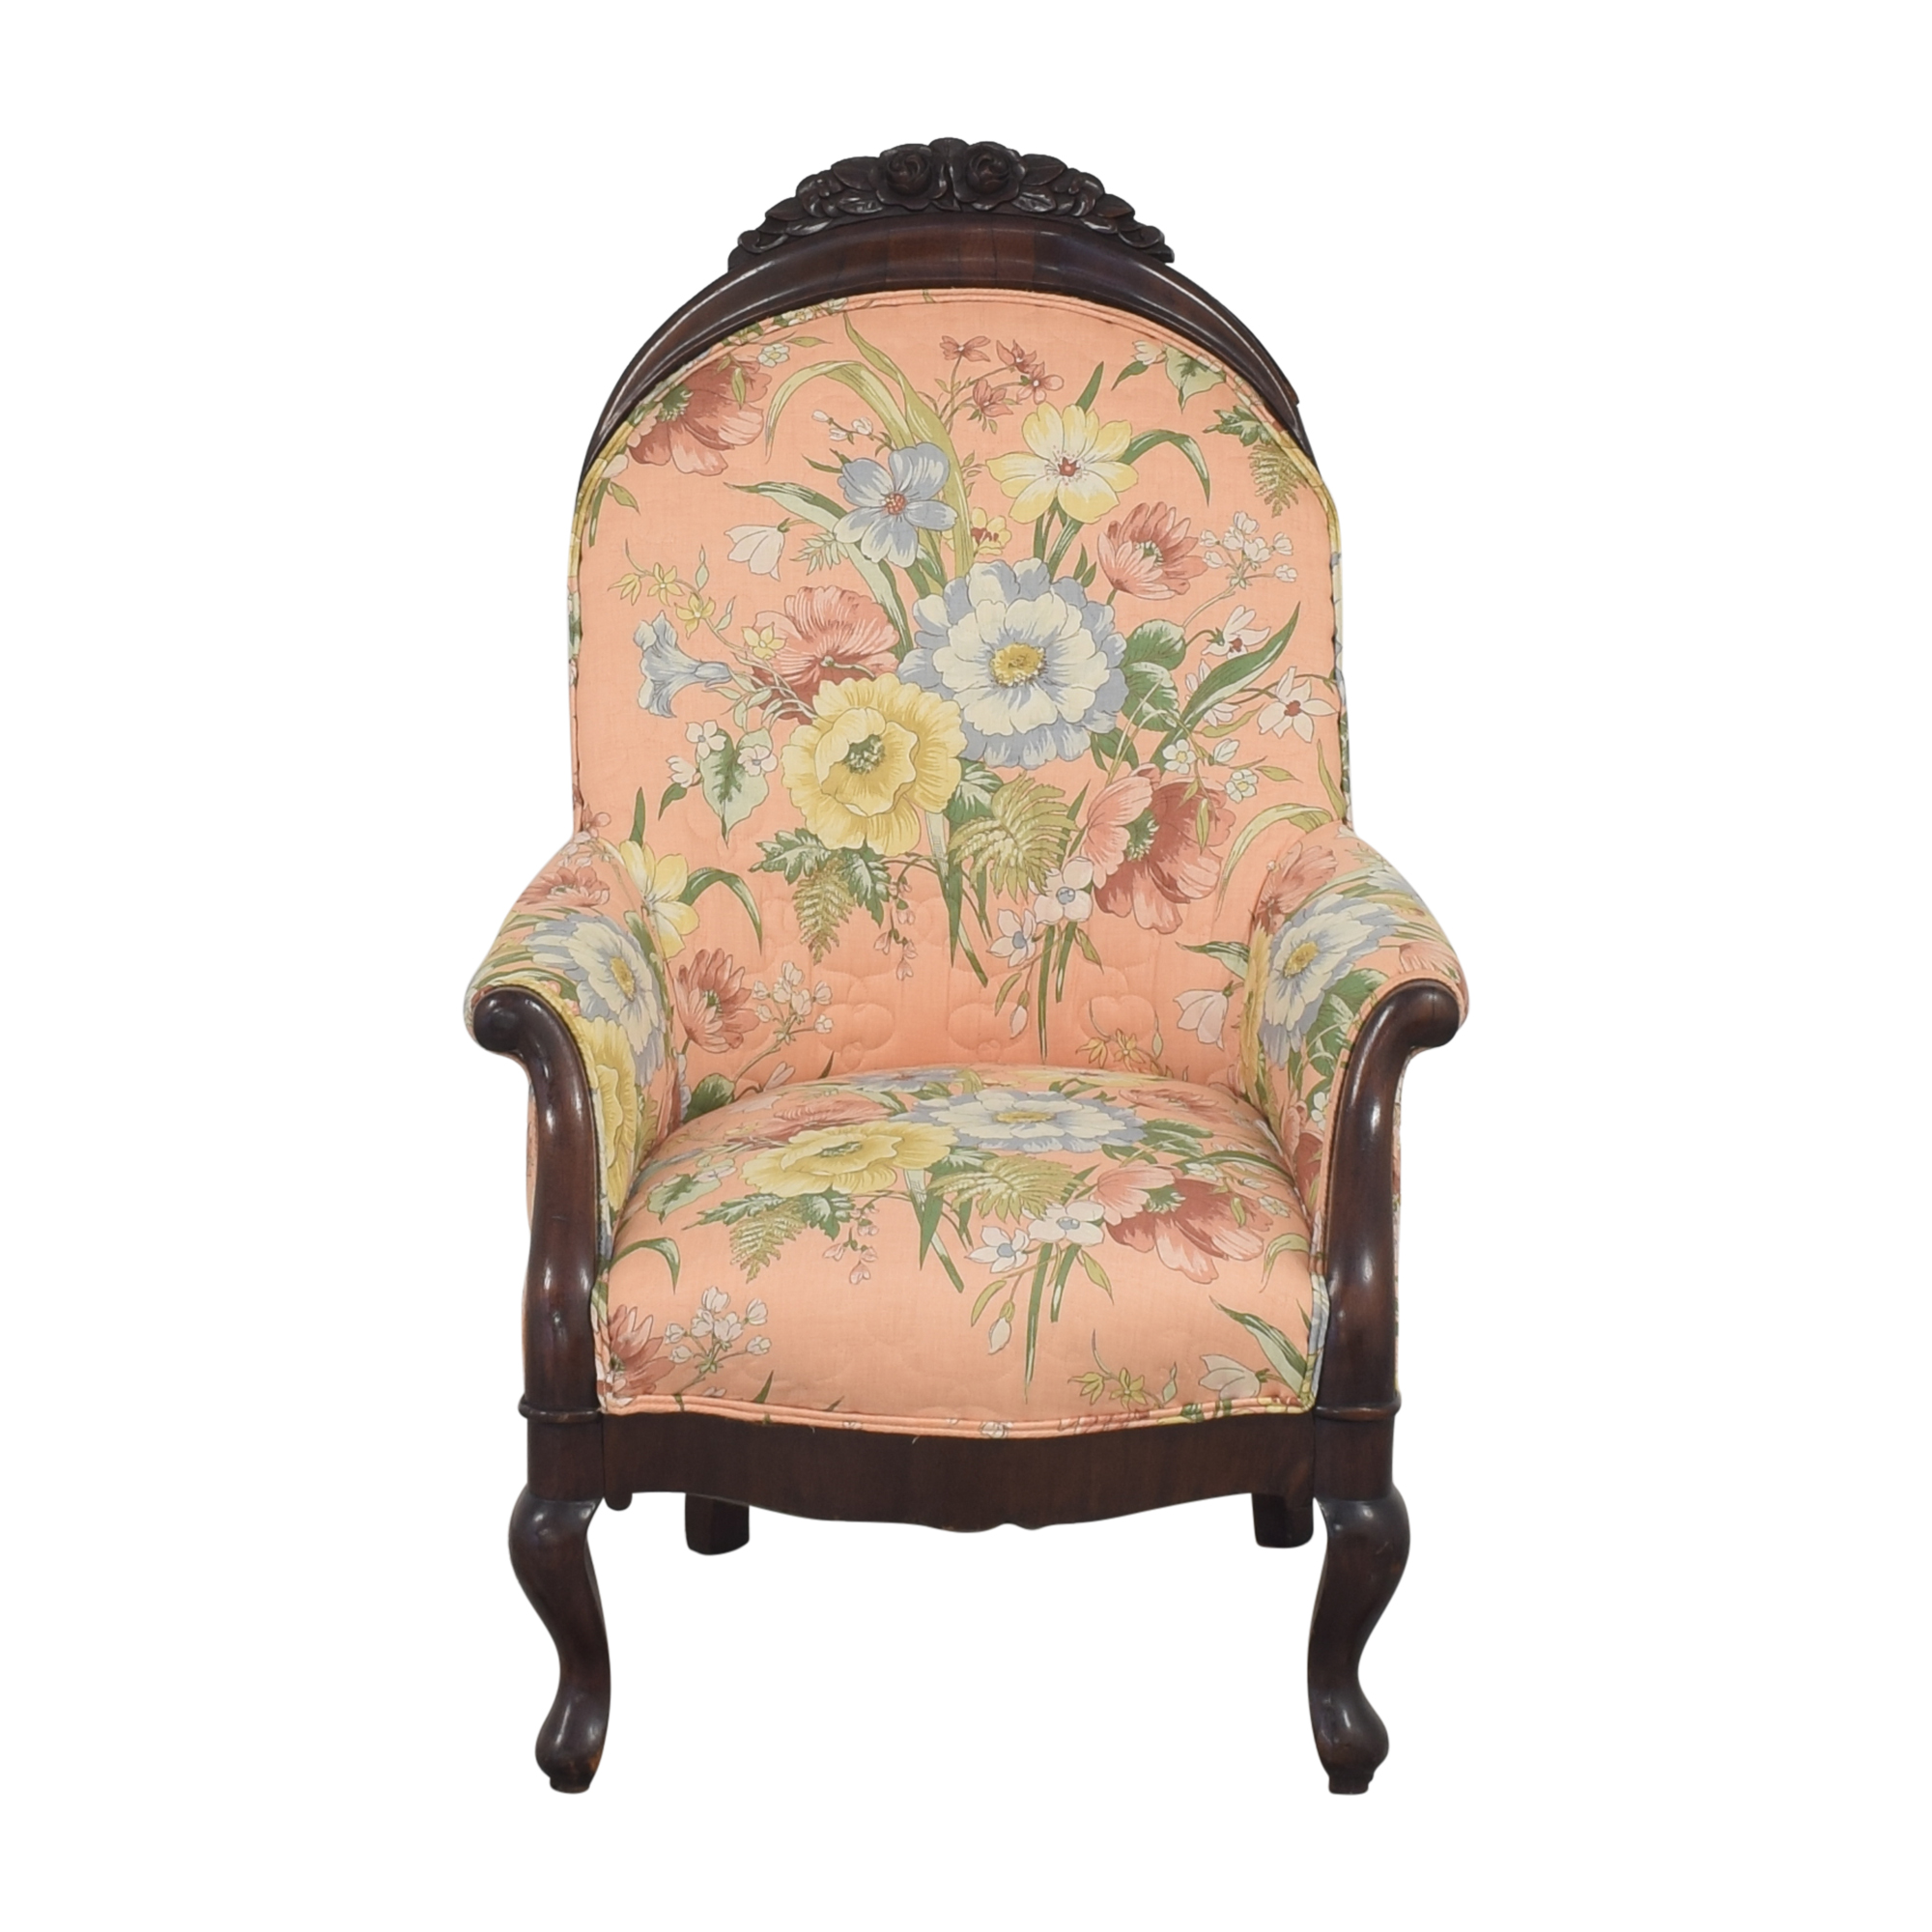 Vintage Style Upholstered Accent Chair on sale